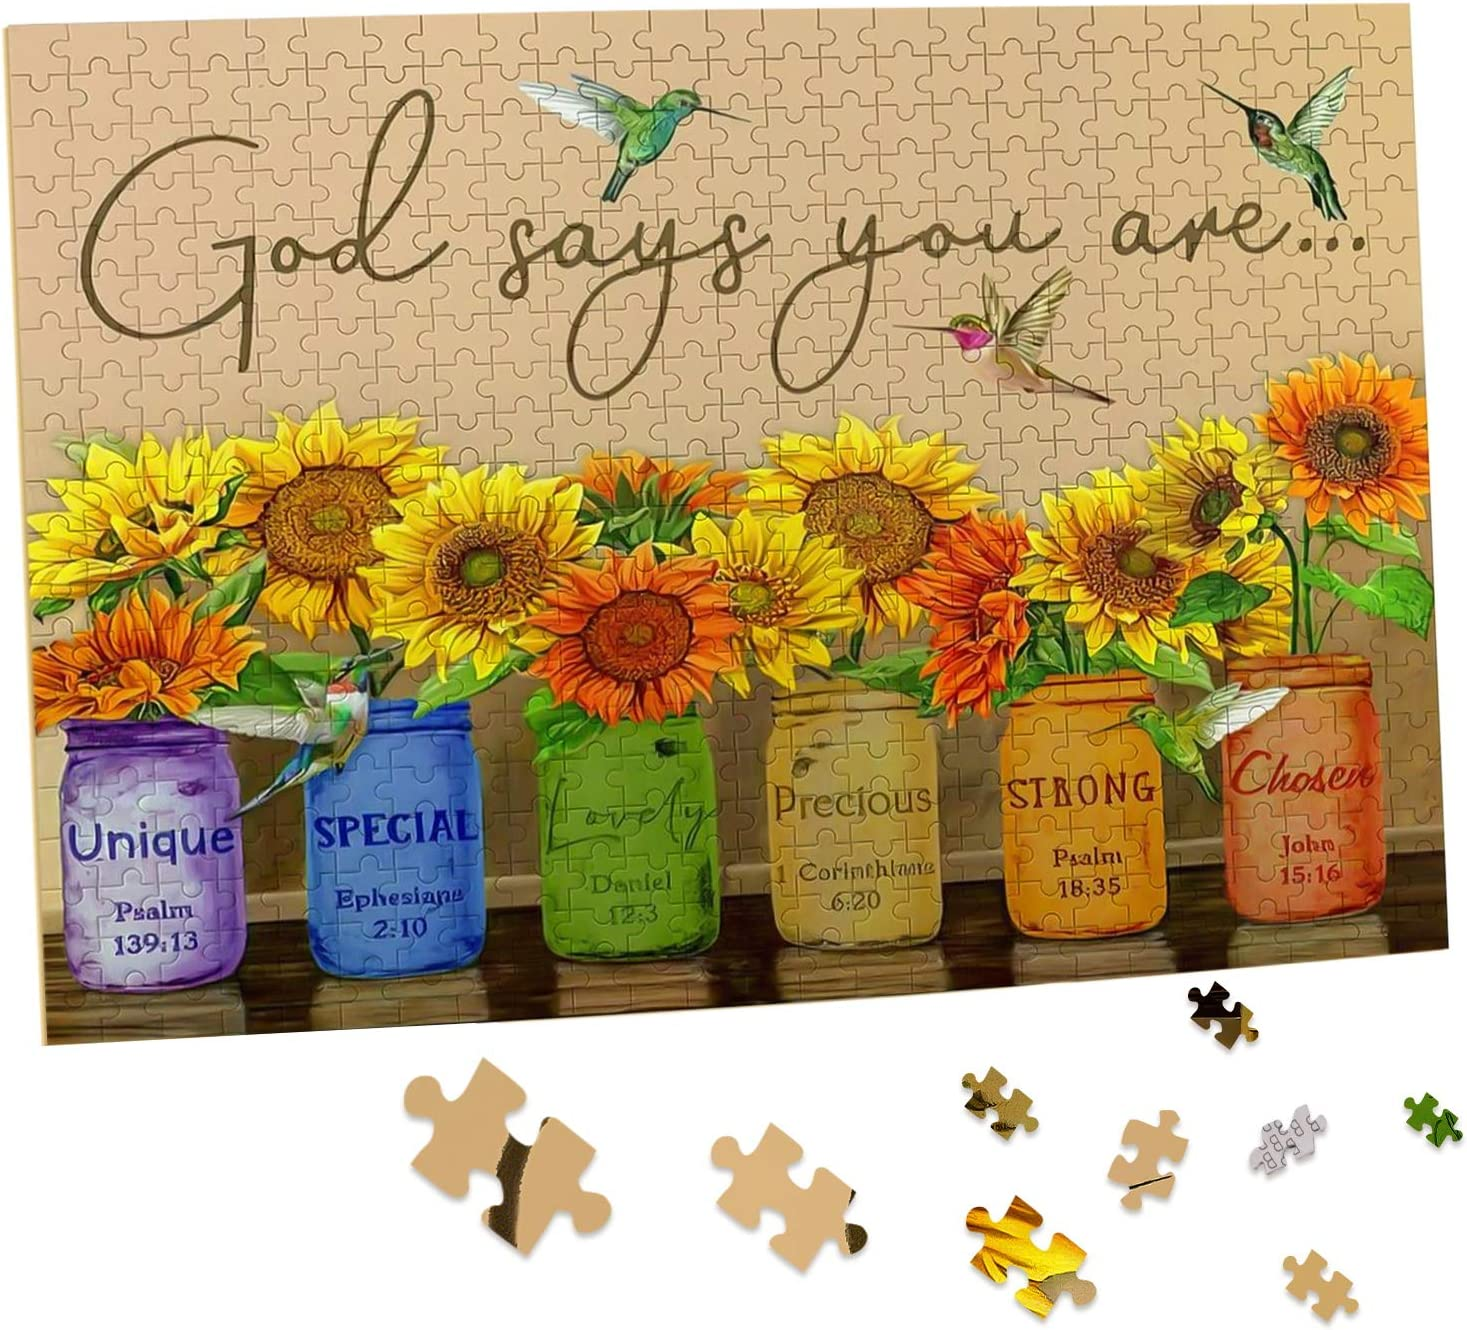 Sunflower Puzzle 500 Piece Puzzles for Adults - Retro Sunflowers and Farmhouse Yellow Flower Hummingbird Animal Inspirational Wooden Jigsaw Puzzles for Family Activities Games - God Says You are: Toys & Games